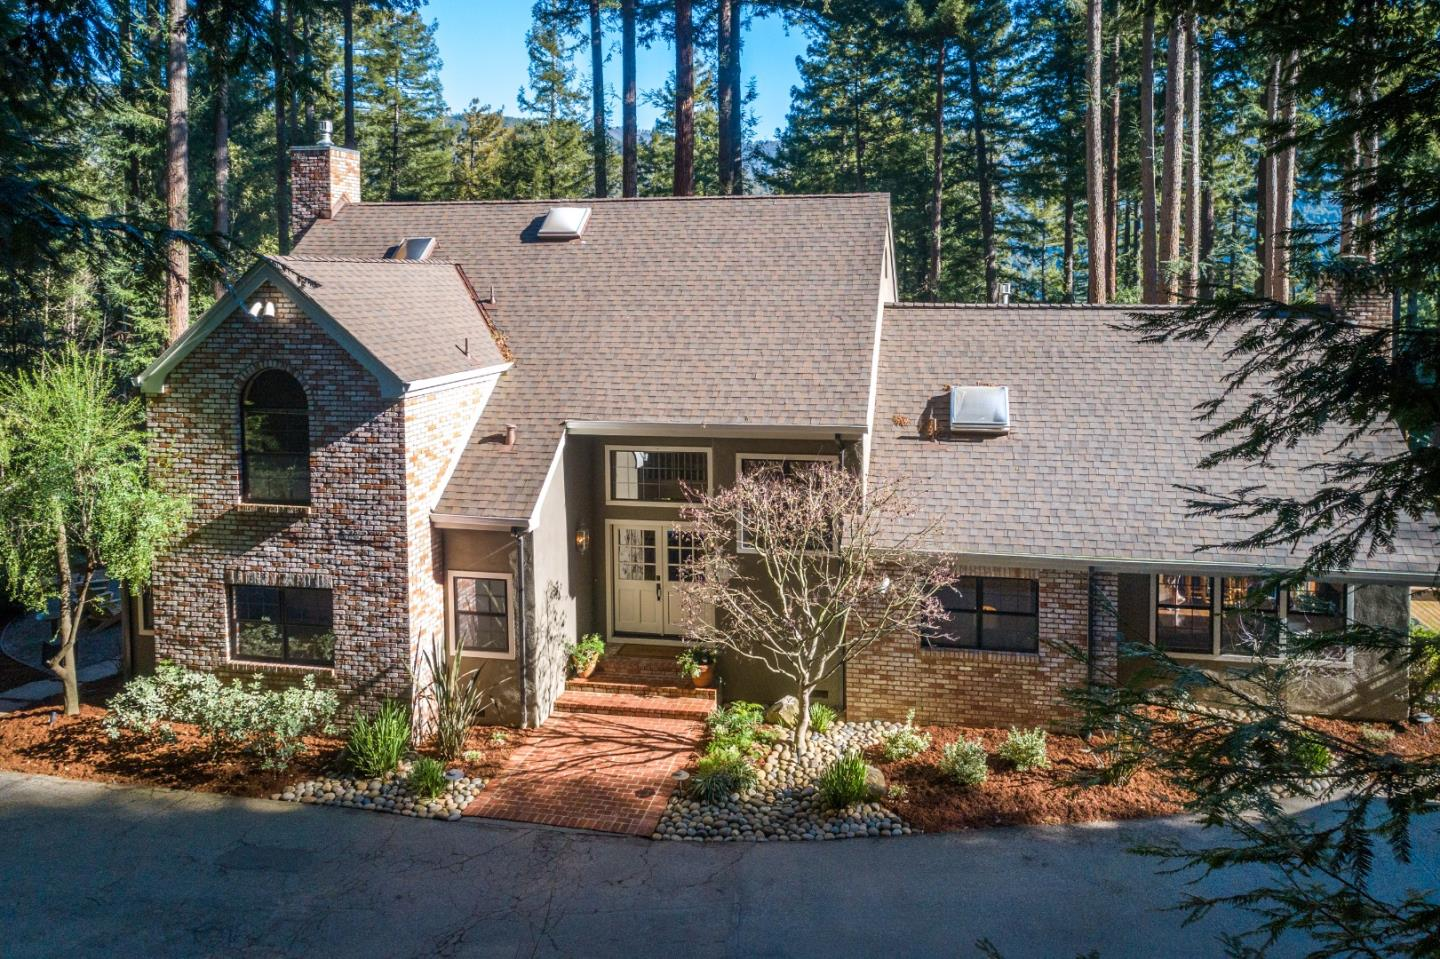 Exceptional quality and design enjoying stunning natural surroundings. Beautiful wide plank hickory hardwood floors, travertine stone entry, wool carpeting. Formal dining with built-in hutch & wine refrig. Kitchen & breakfast nook, custom cabinetry, granite counter tops, Thermador appliances. Living room features custom gas stone fireplace, sliding door to patio. Family room w/high ceilings, brick fireplace & wet bar, opens to expansive deck & landscaped backyard. Office, powder room & spacious guest suite also on ground flr. Upstairs 3 spacious bedrooms incl. a lovely master suite, 2 full baths, walk-in attic. The gorgeous backyard is ideal for entertaining. From the hot tub enjoy amazing views of mountains, redwoods and the big starry night sky. Flagstone pathways lead to scenic sitting areas, a large lawn, raised garden beds, treehouse, play structure, sports court. Located in the desirable Summit area close to the store, wineries, Loma Prieta/CT English schls. Easy access to Hwy 17